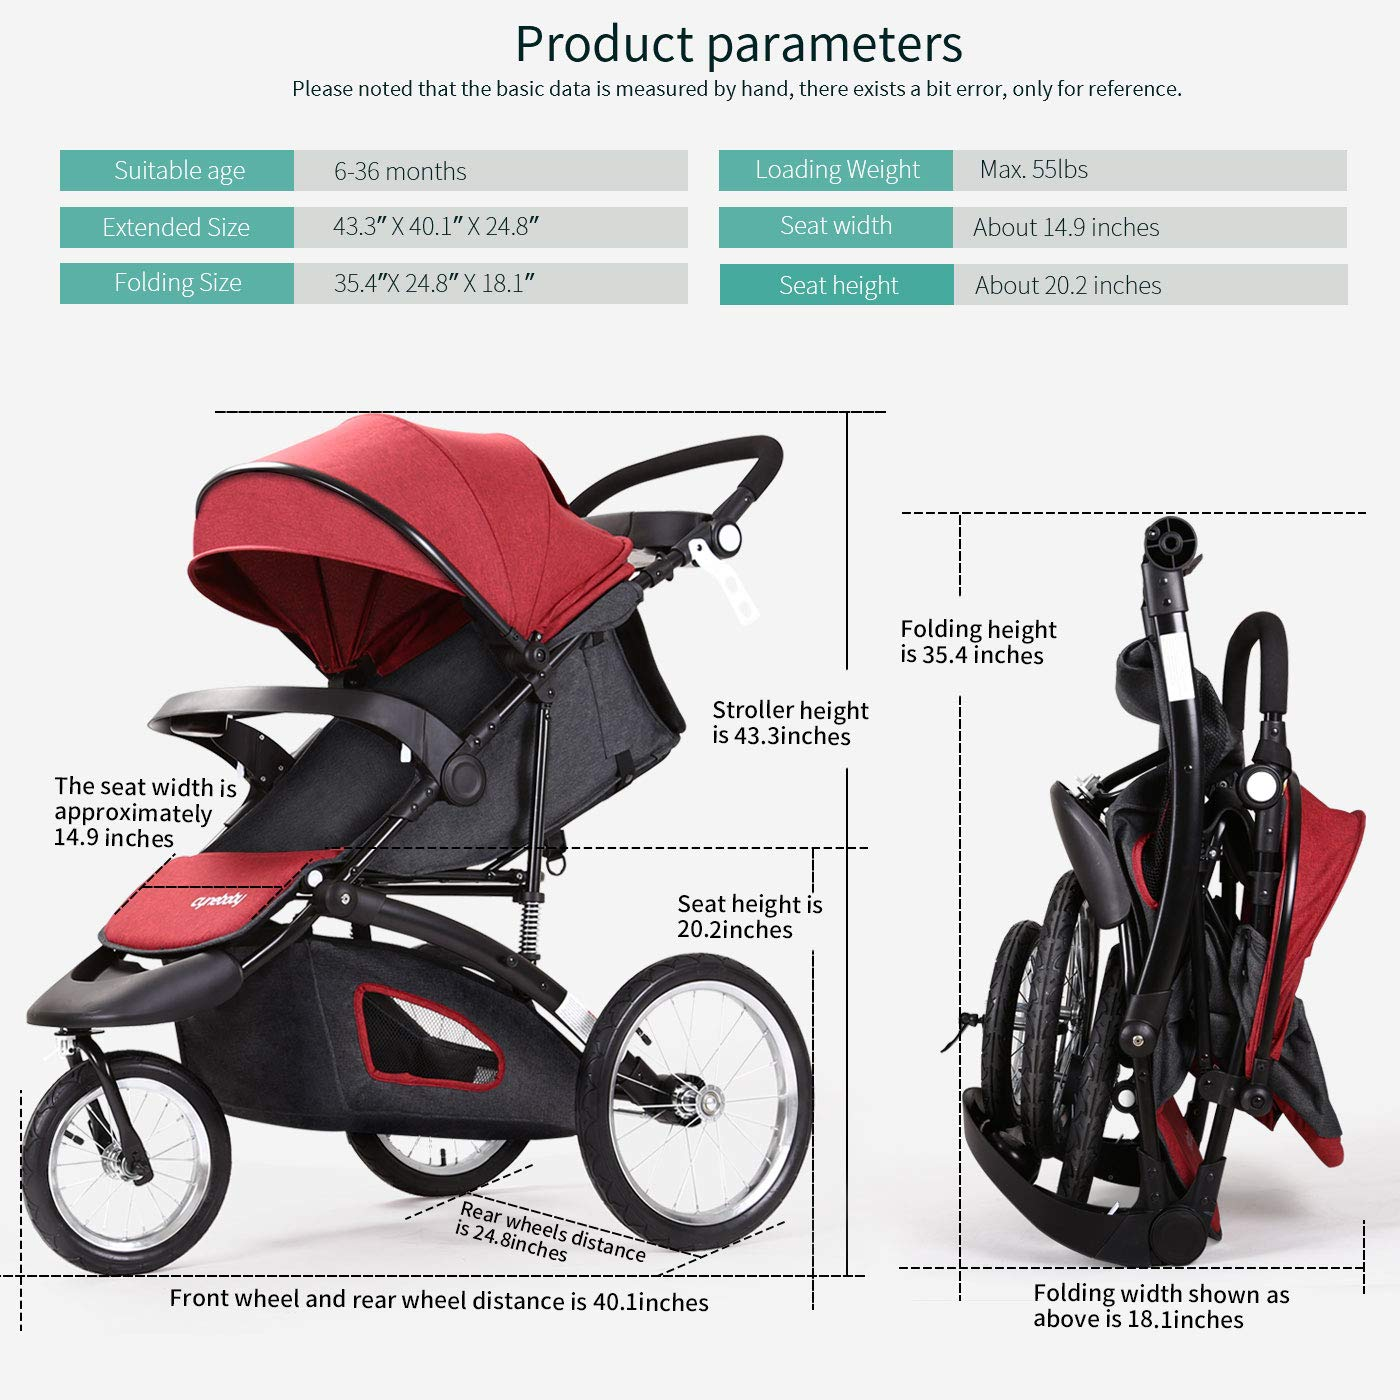 Jogging Stroller Fold City Baby Jogger Travel Citi Jog Strollers Single Toddler Baby Pram Jogging Compact Urban Ultralight Joggers Beby Carriage Pushchair Stroller Travel System by Cynebaby / HAIXIAO (Image #8)